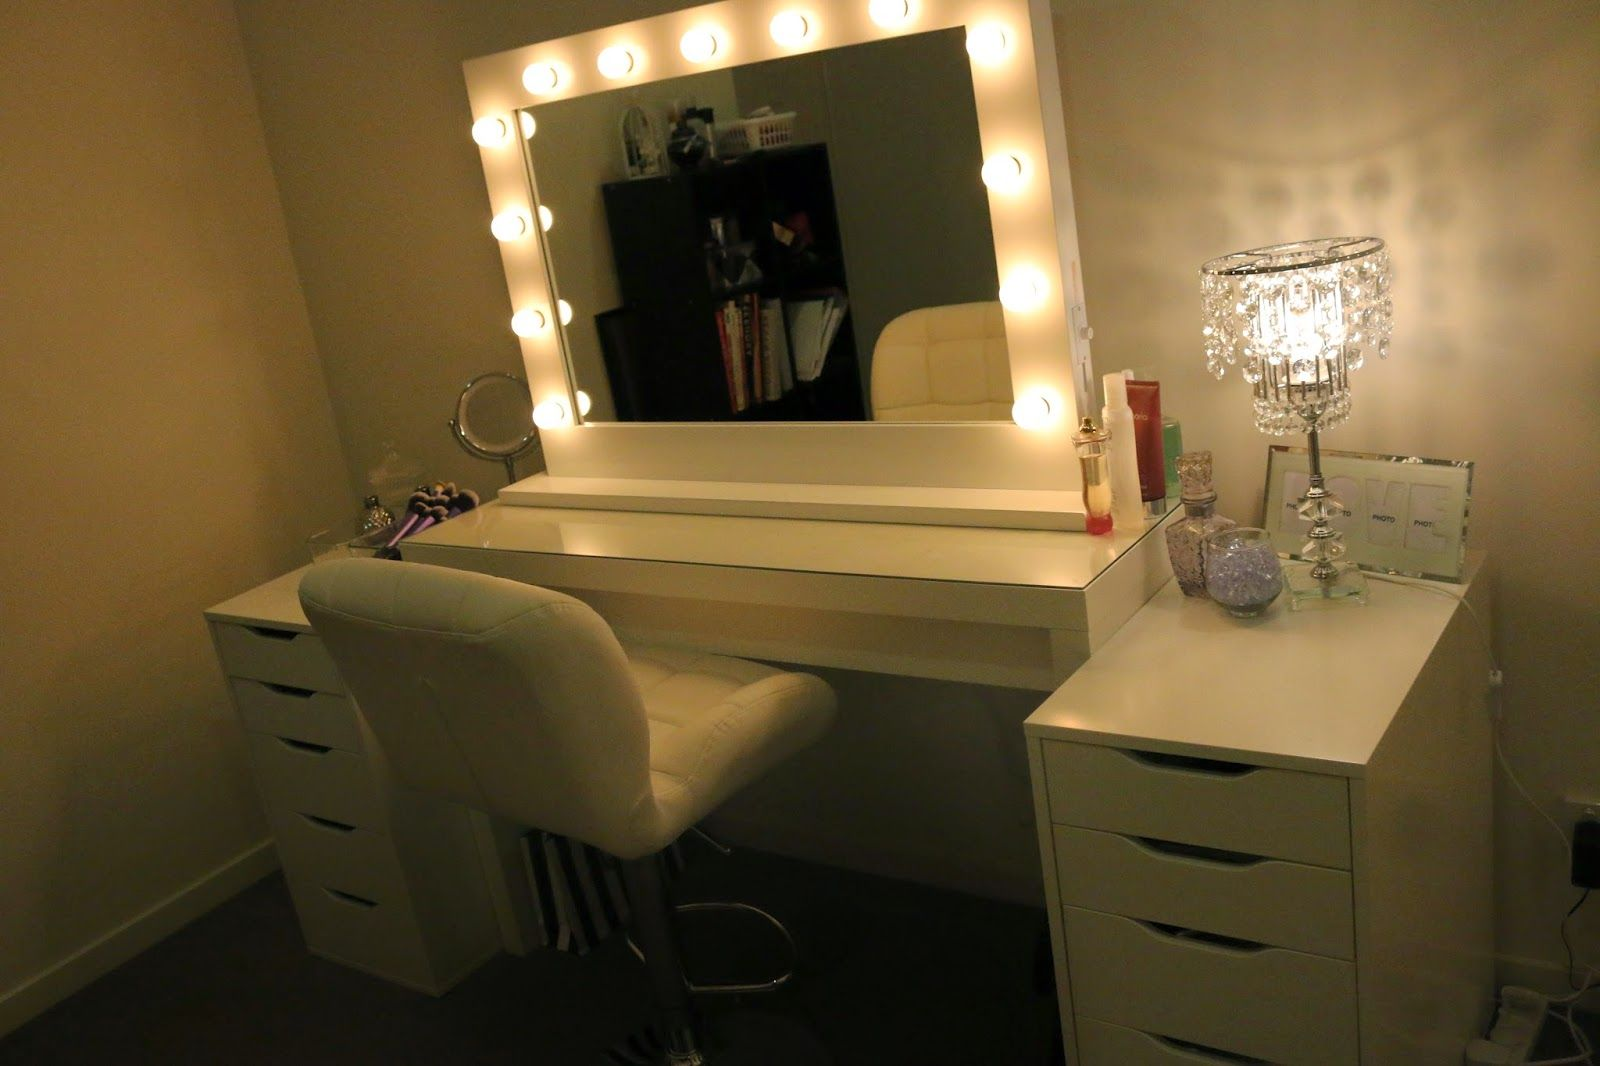 112 Reference Of Black Makeup Vanity Set With Lighted Mirror In 2020 Bedroom Vanity With Lights Bedroom Vanity Set Bedroom Makeup Vanity